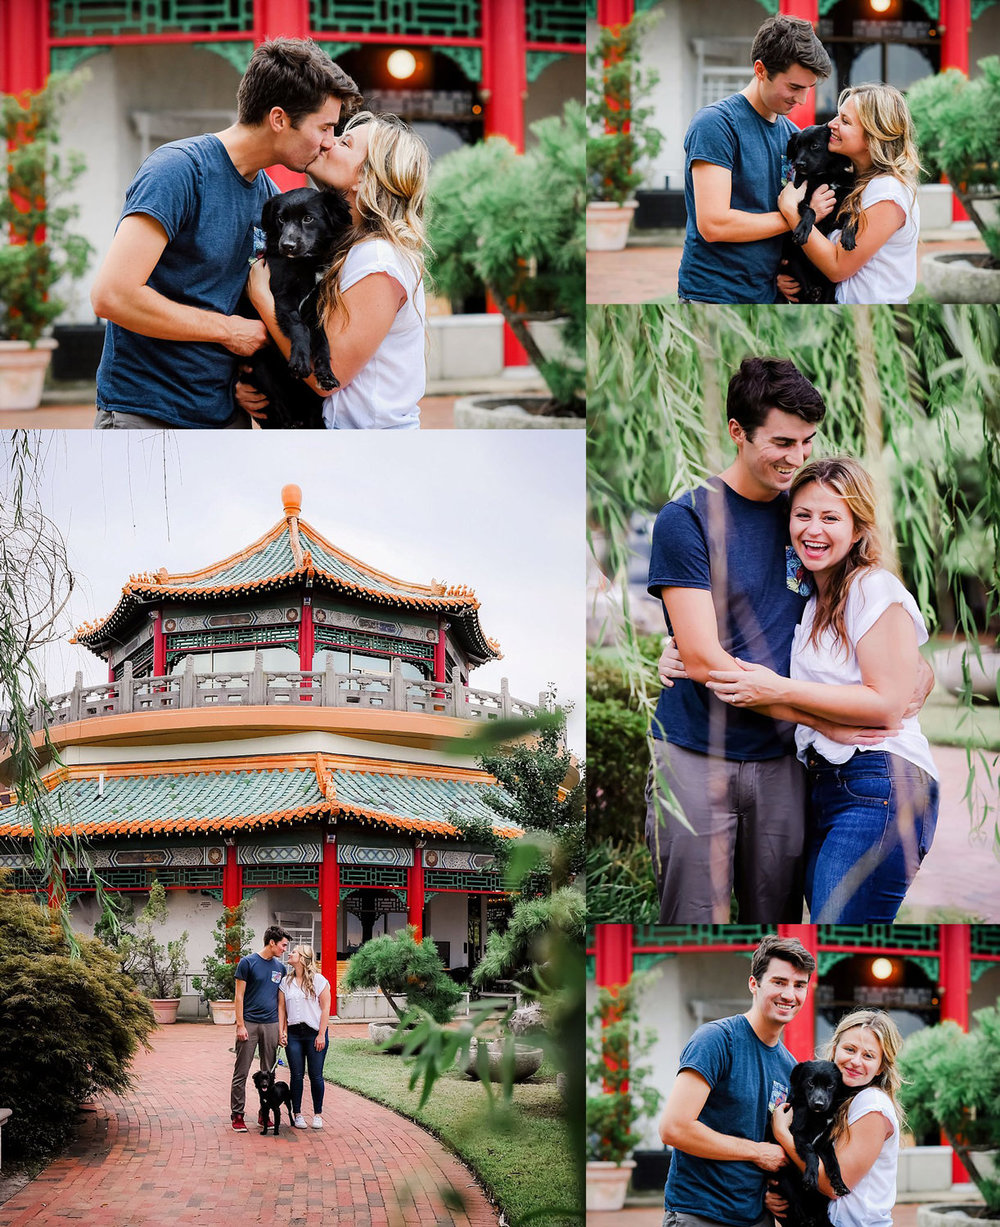 creative-engagement-pics-with-puppy-at-norfolk-pagoda-garden-melissa-bliss-photography-virginia-beach-photographer.jpg